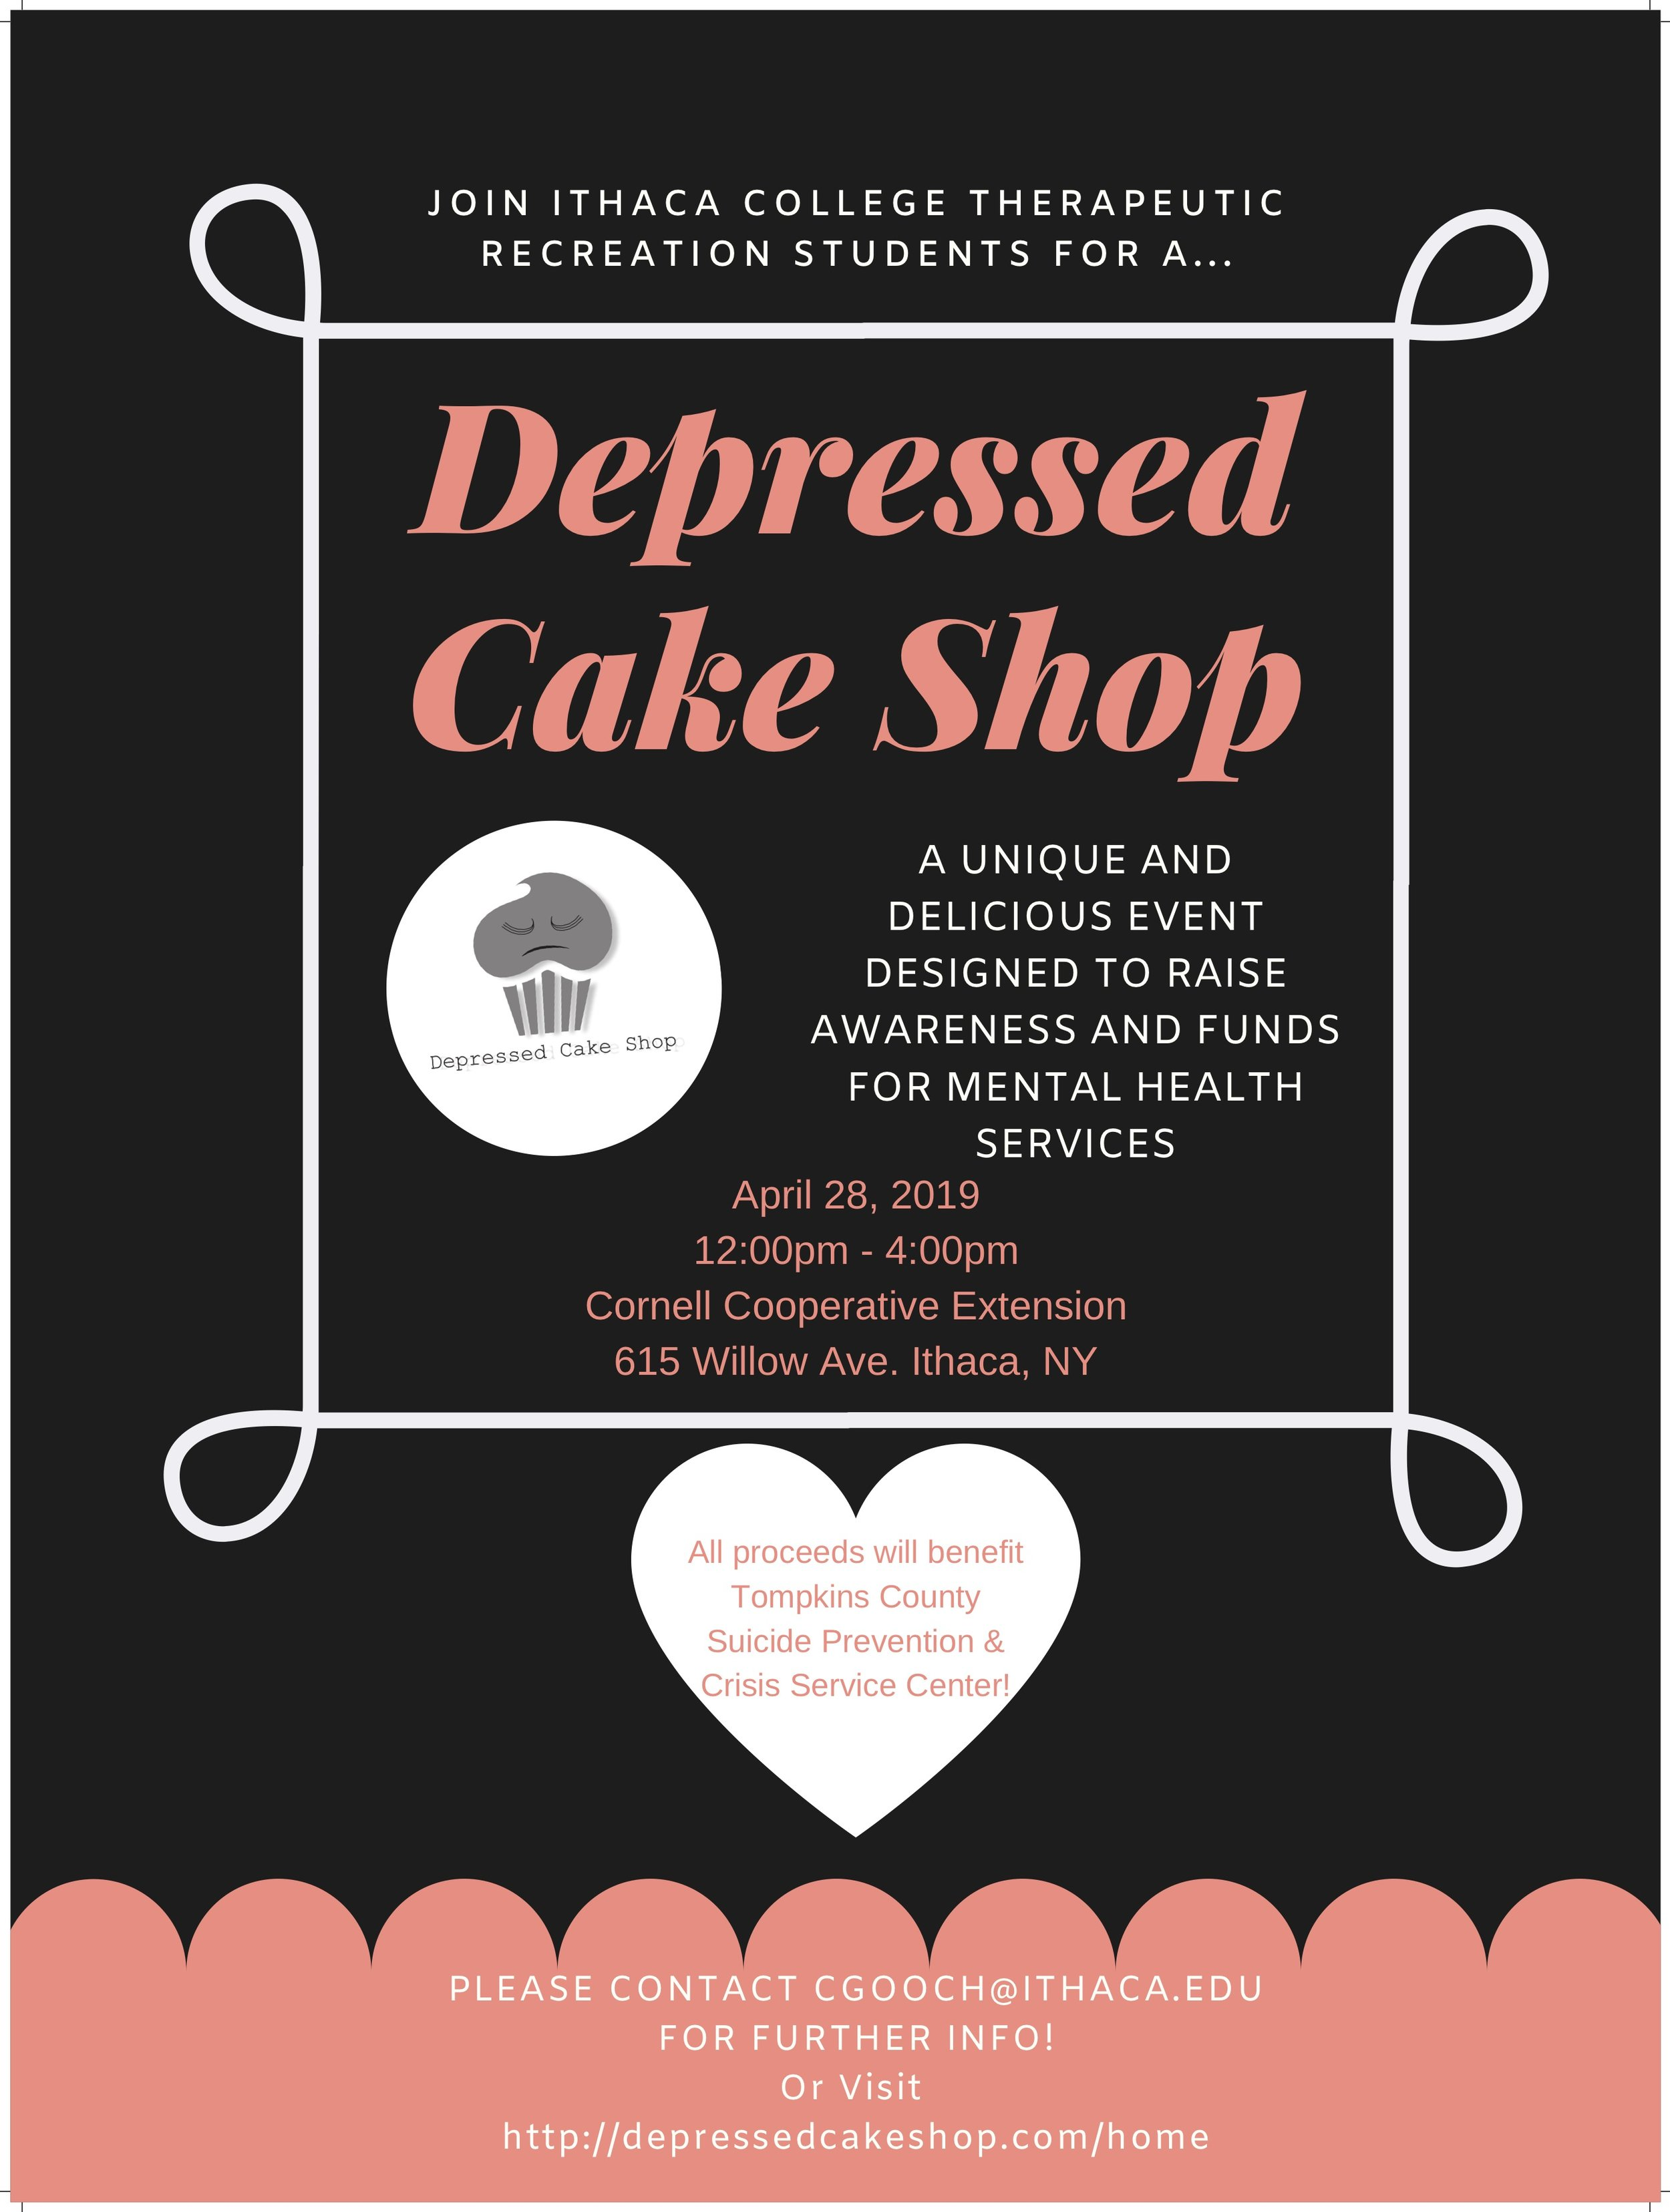 Depressed Cake Shop Flier Ithaca jpeg.jpg